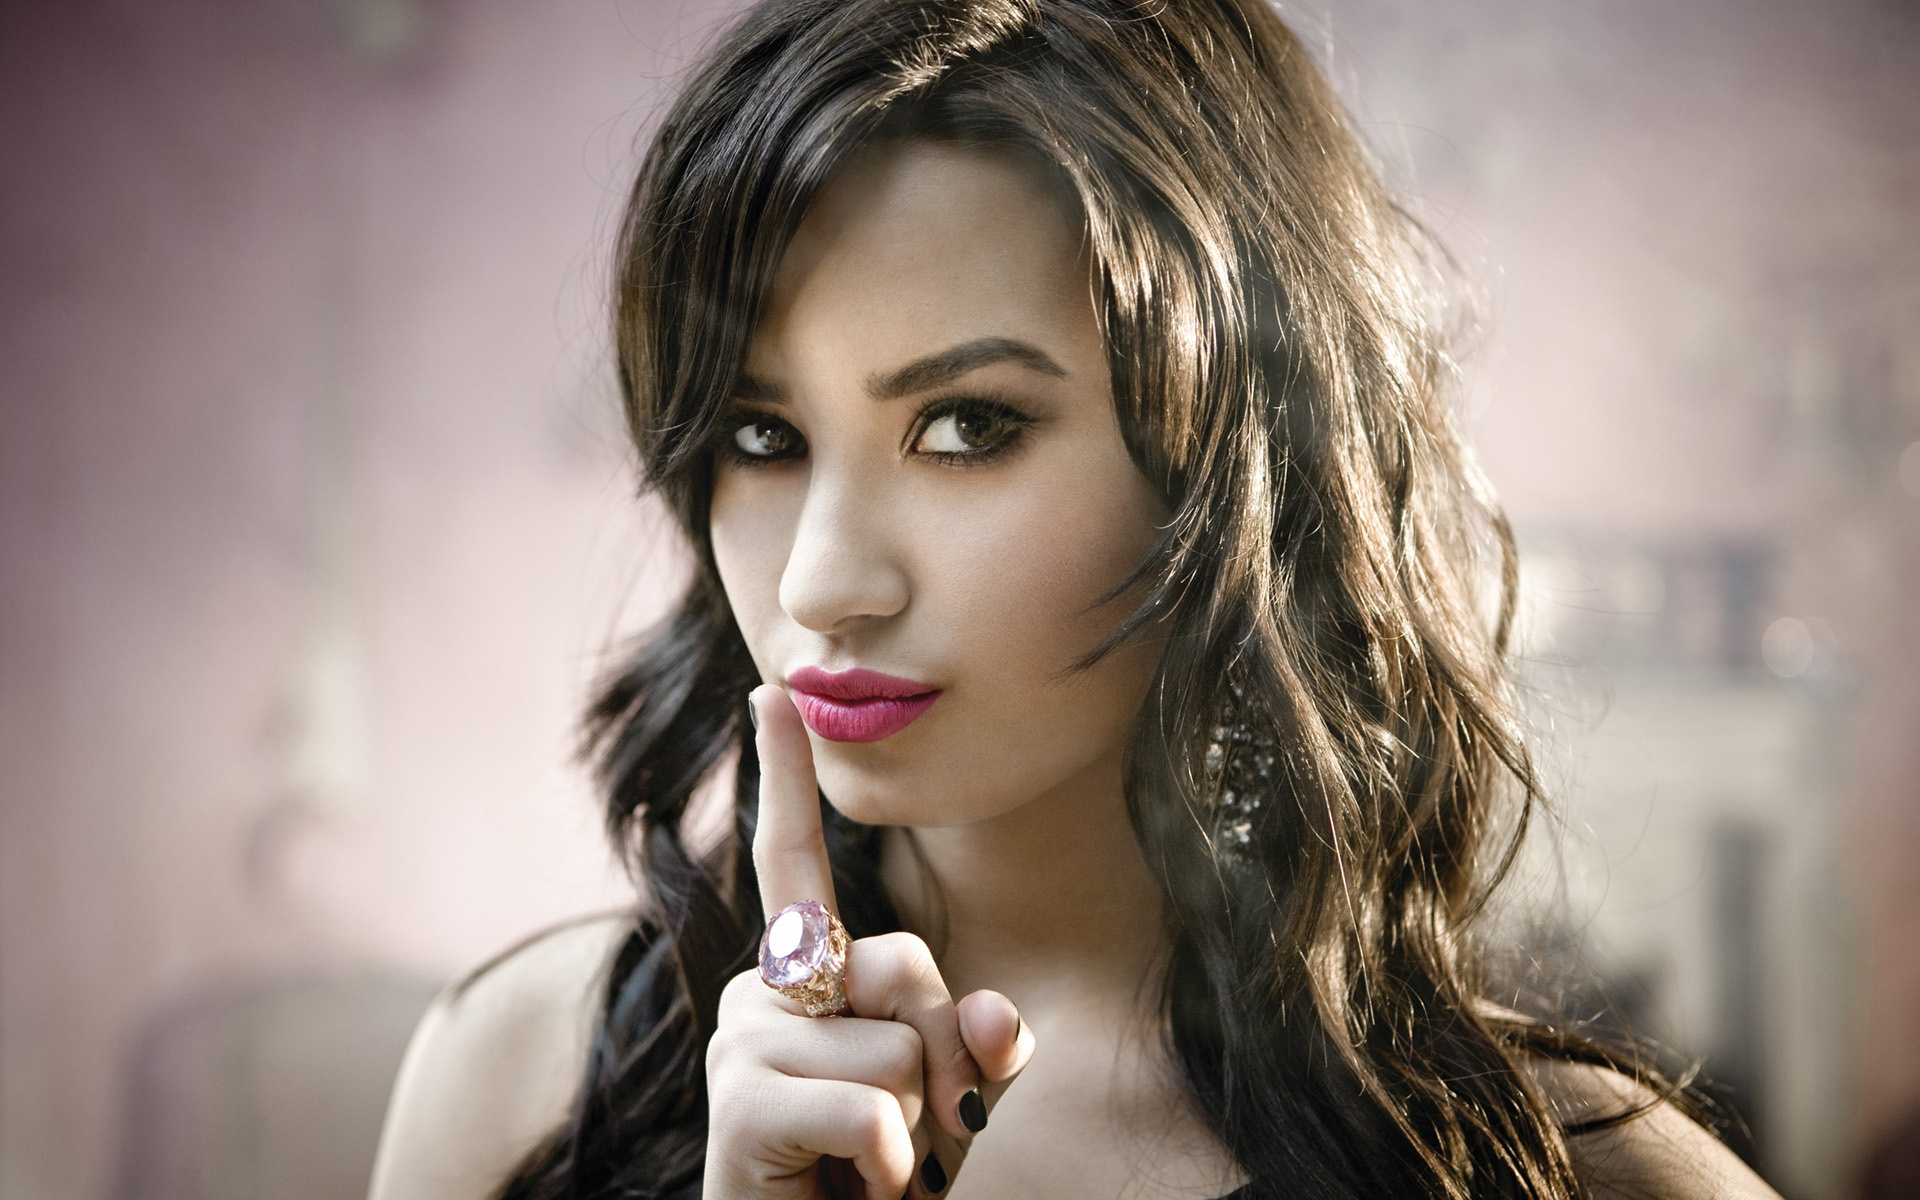 demi lovato wallpapers hd a11